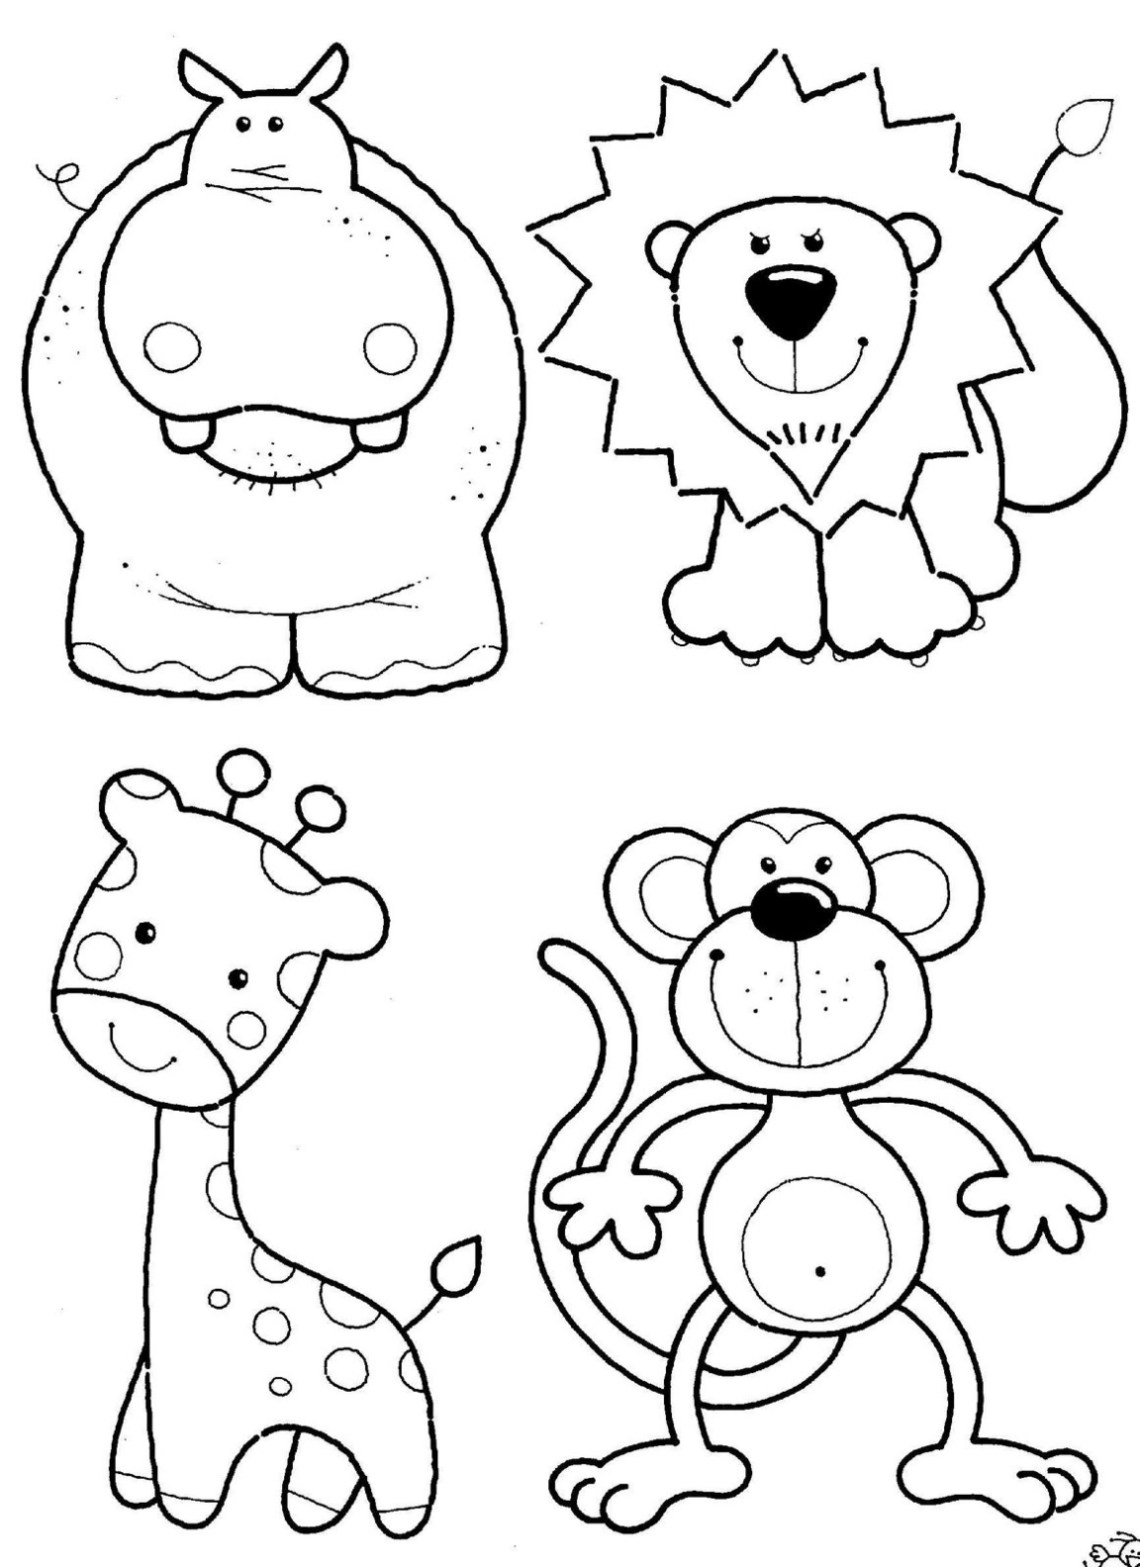 Jungle animal coloring pages to download and print for free | free printable coloring pages jungle animals